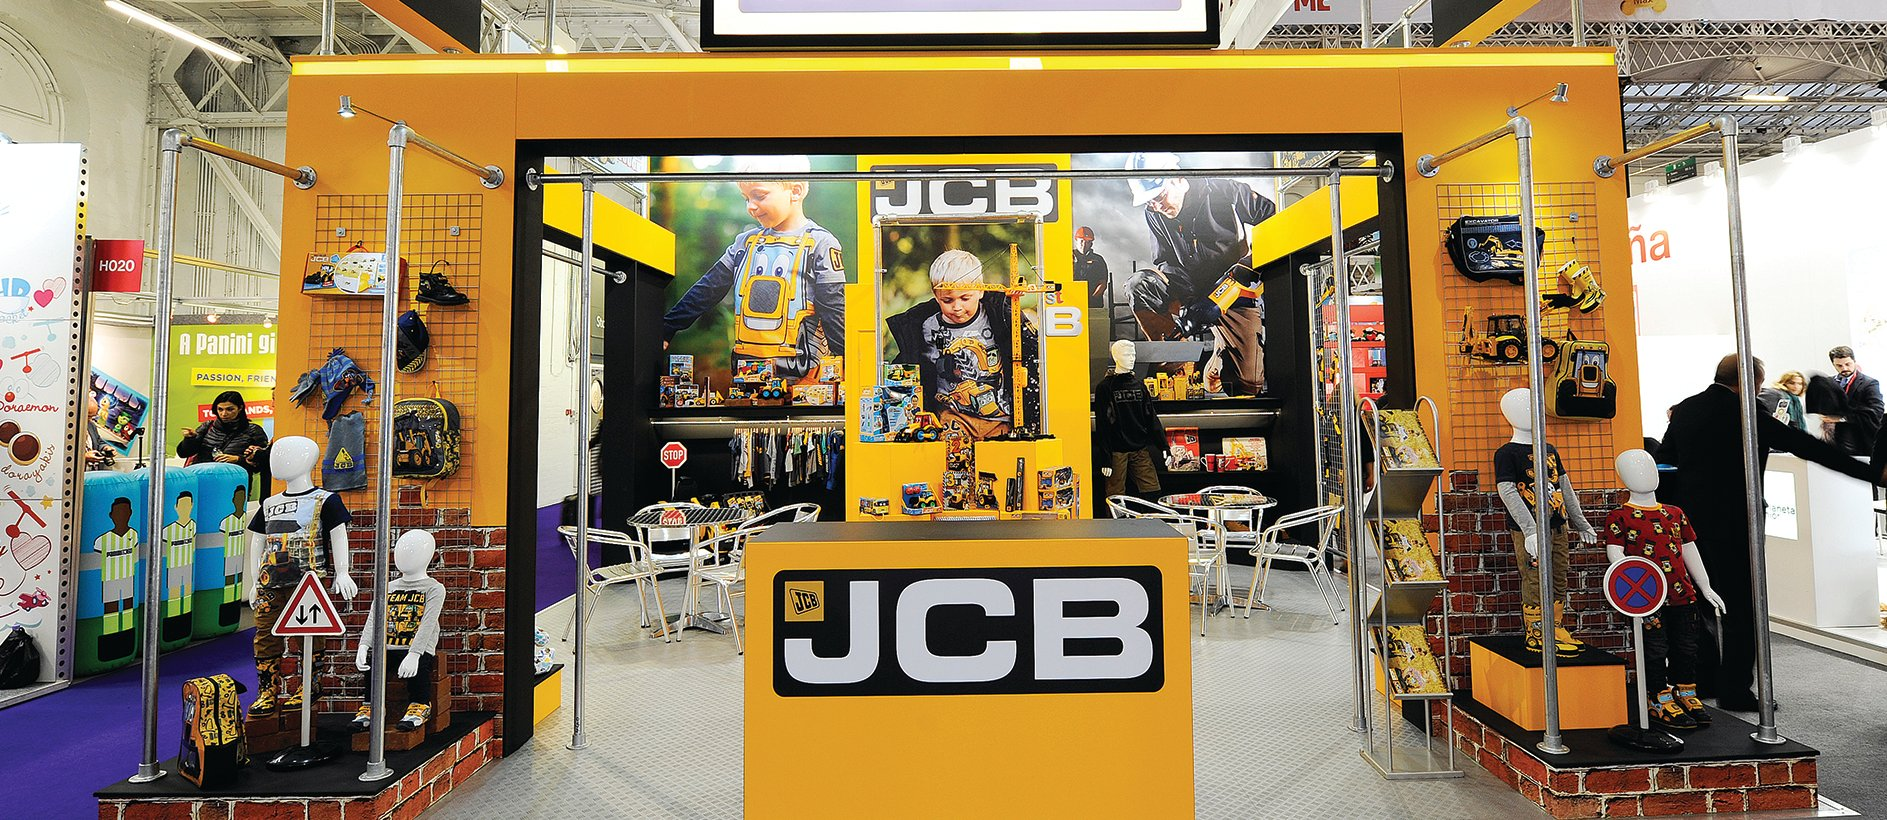 Exhibition Shell Yard : Large exhibition stand for jcb bespoke build exhibit